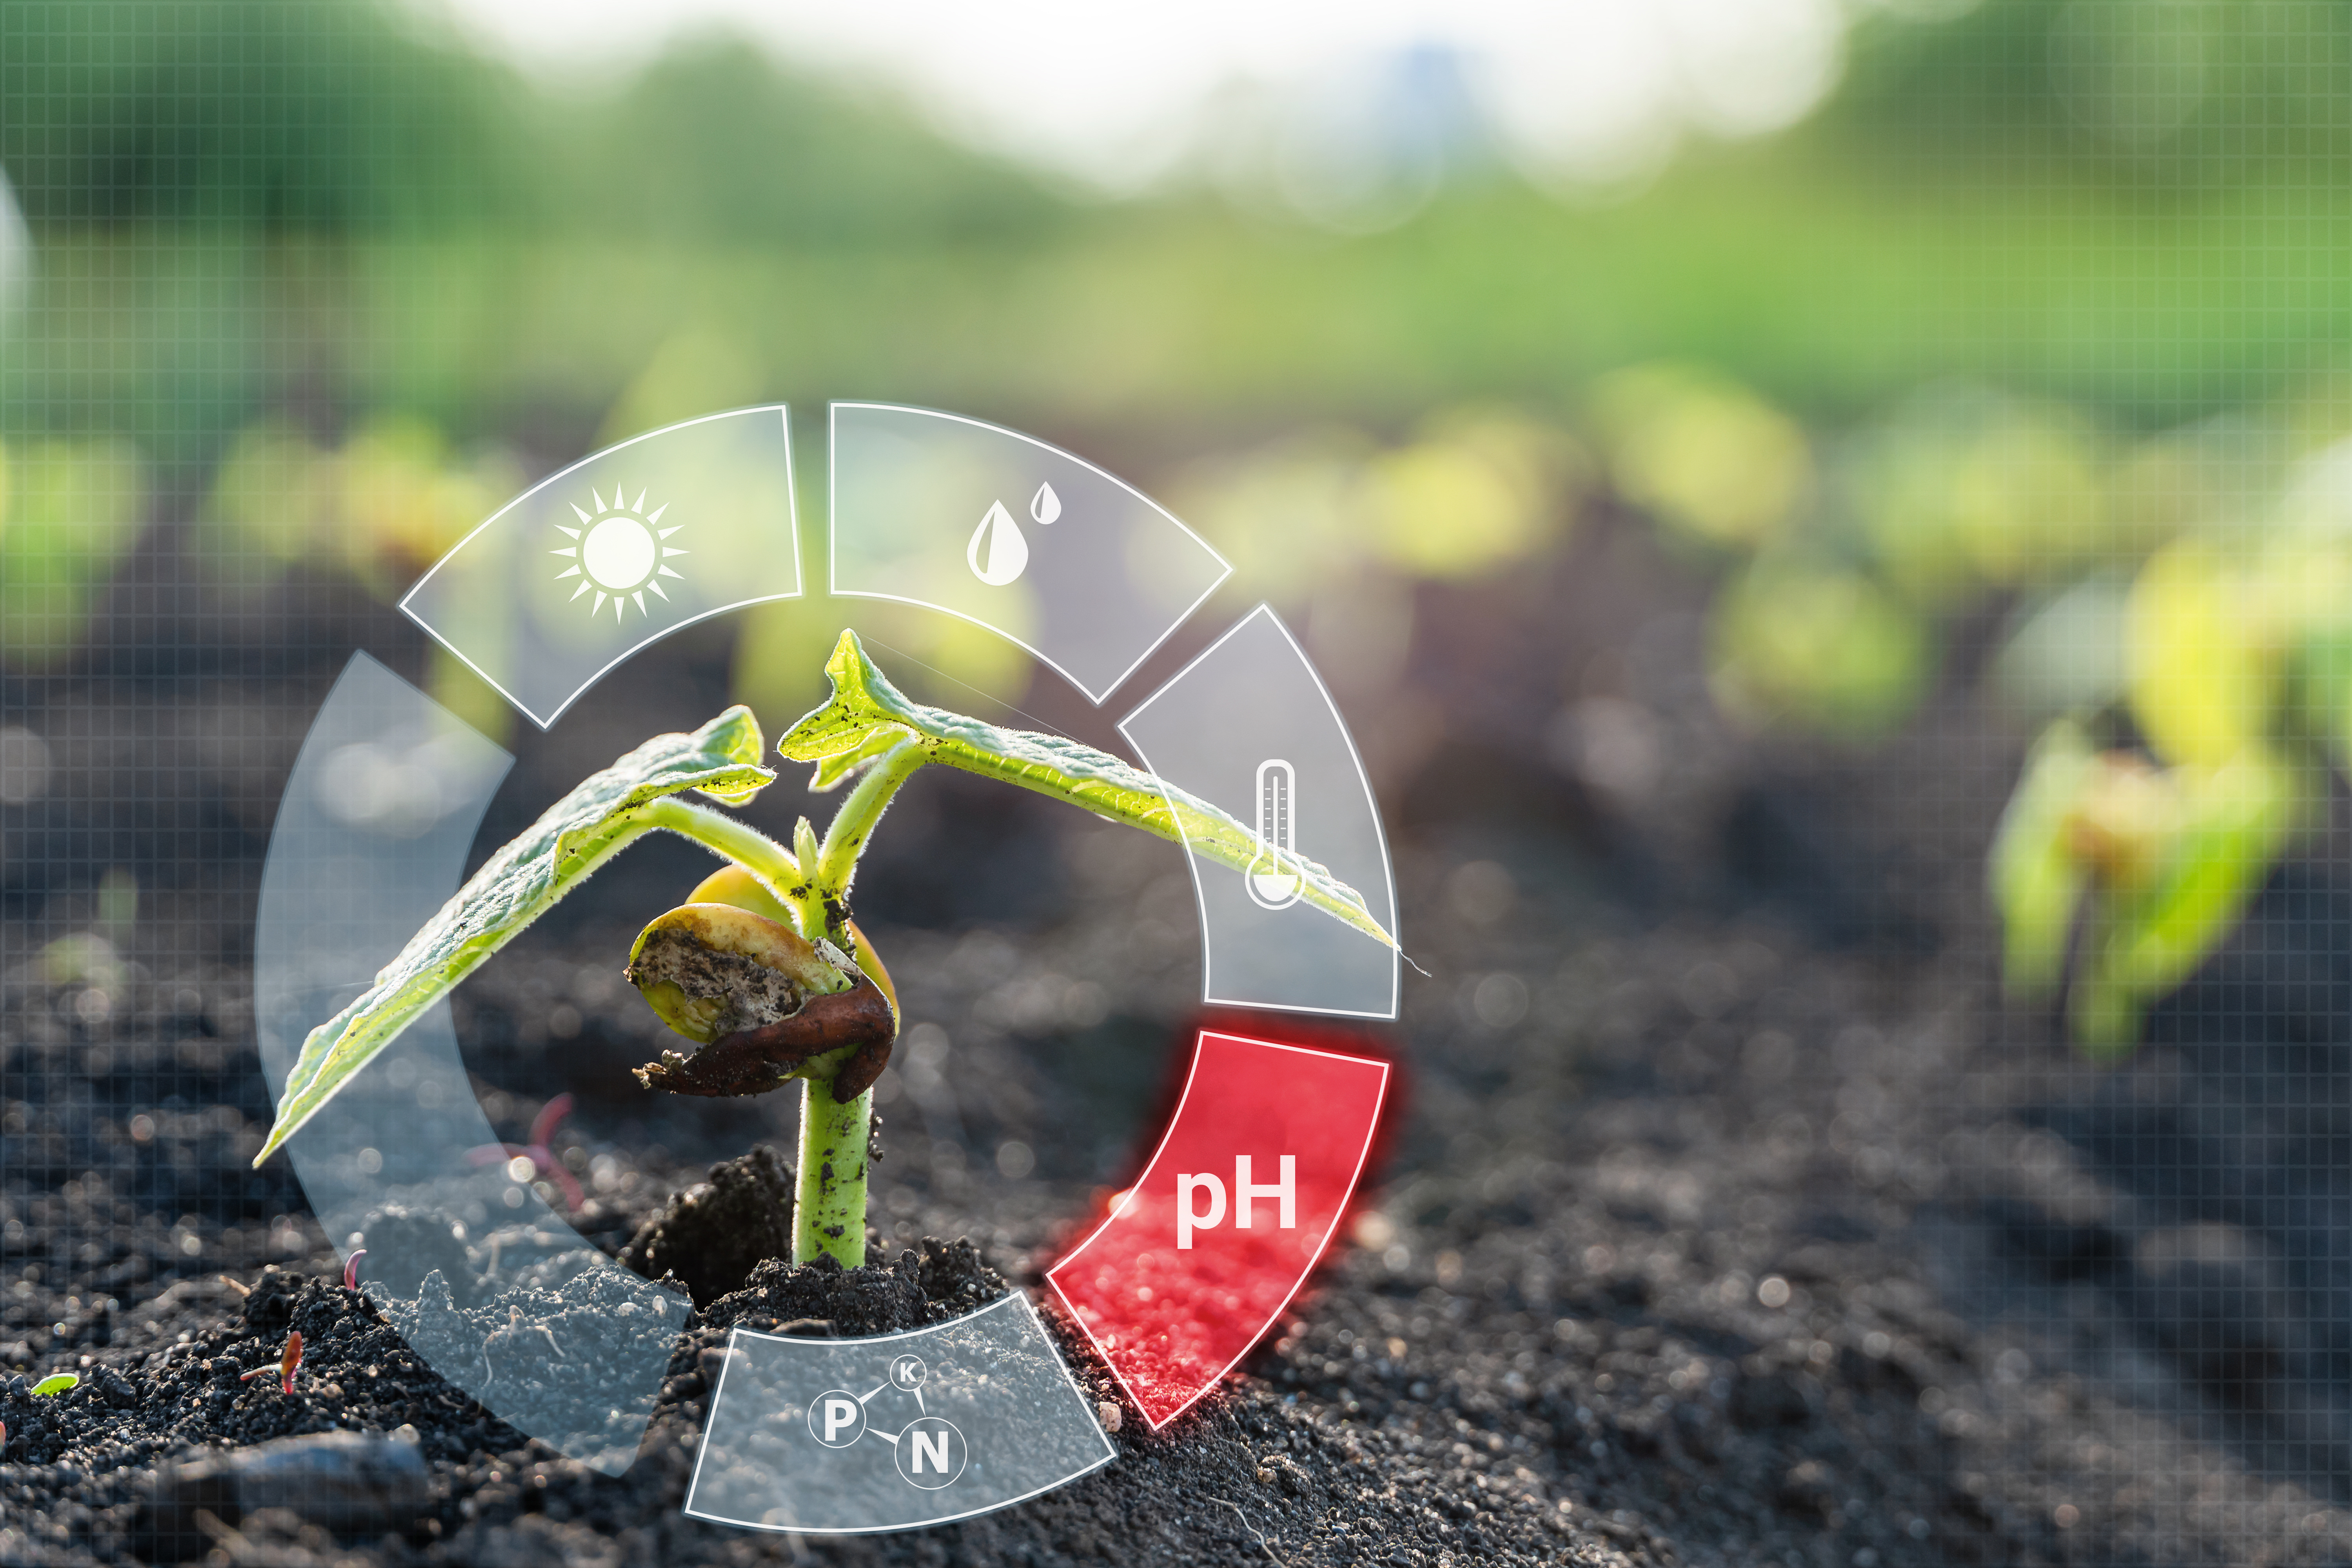 pH is a fundamental parameter of growing